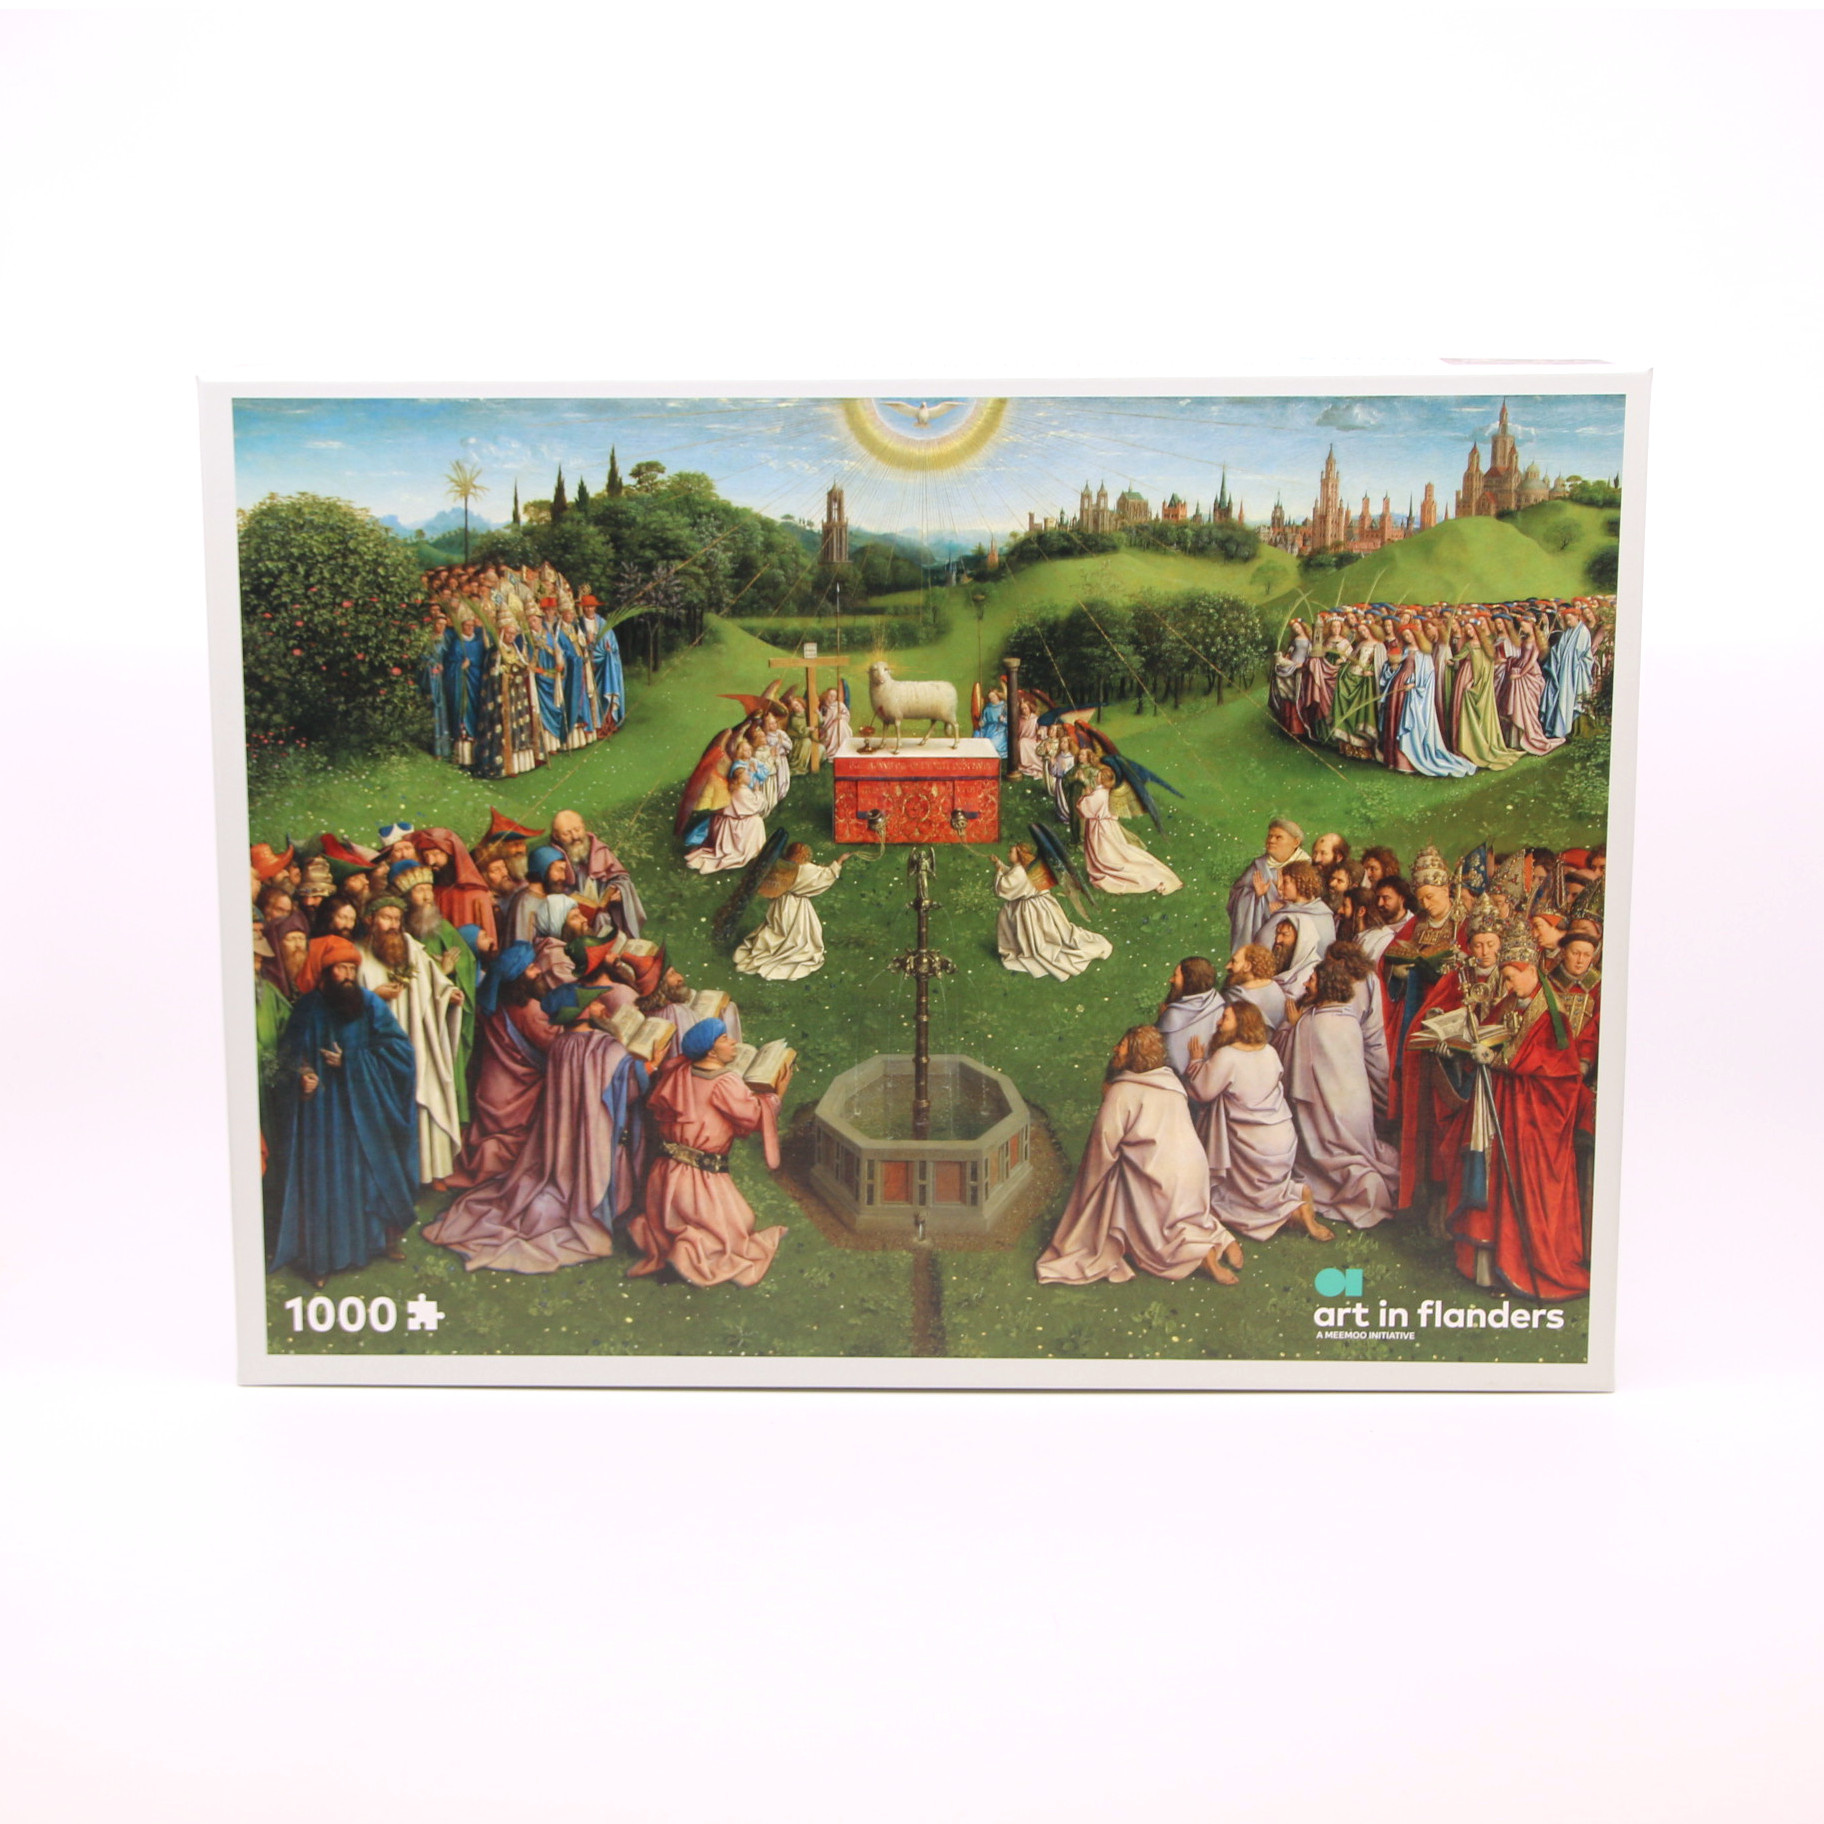 Sint-Baafskathedraal Jigsaw puzzle with The Adoration of the Mystic Lamb - 1,000 pieces